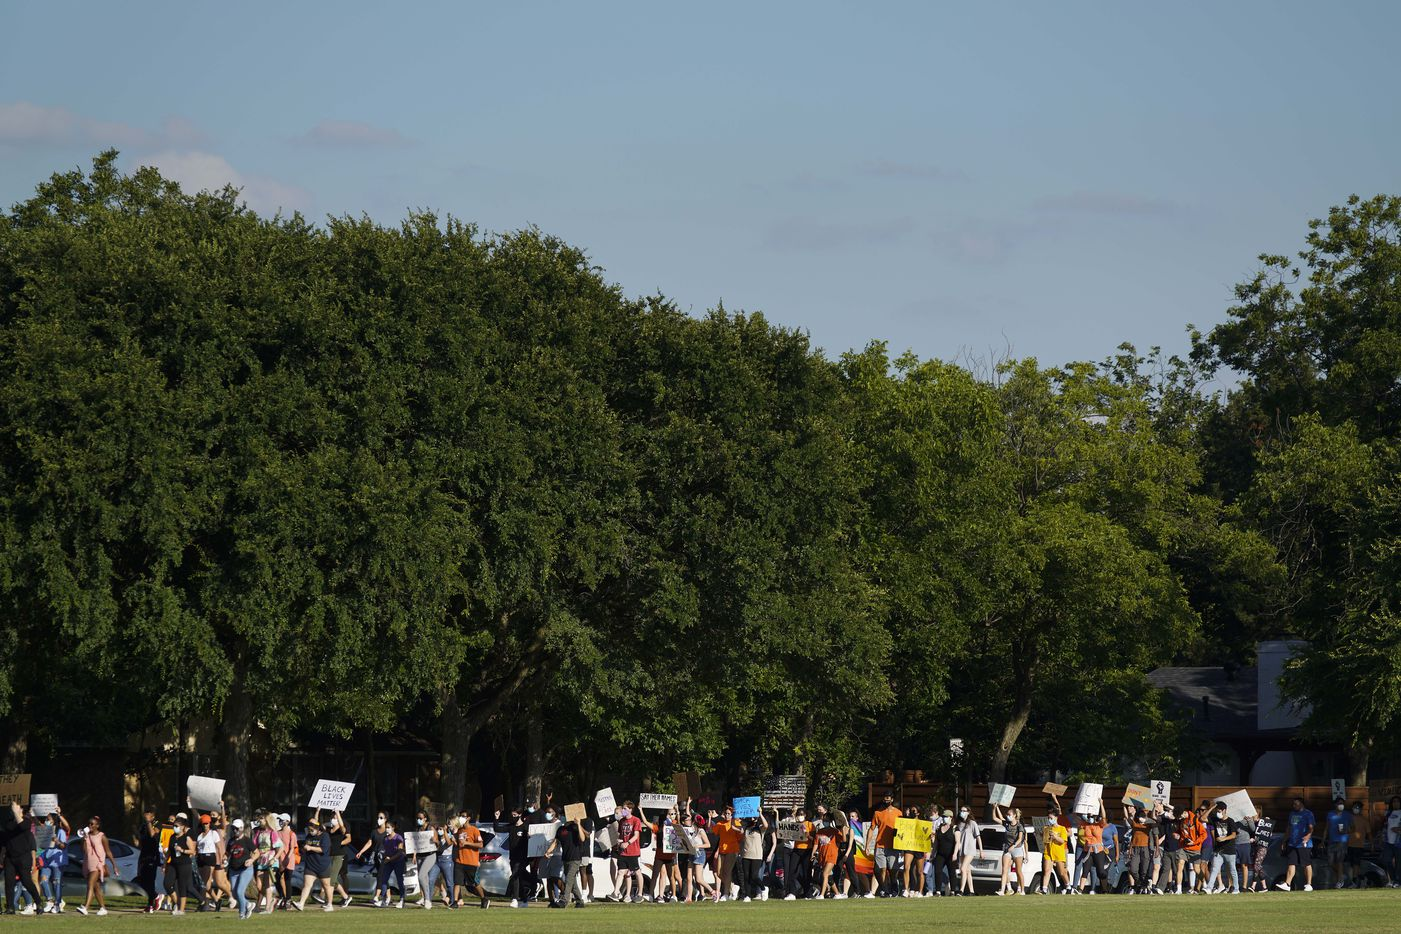 Demonstrators march around the perimeter of Berkner Park during a protest organized by Berkner High School students as protests continue after the death of George Floyd on Wednesday, June 3, 2020, in Richardson.